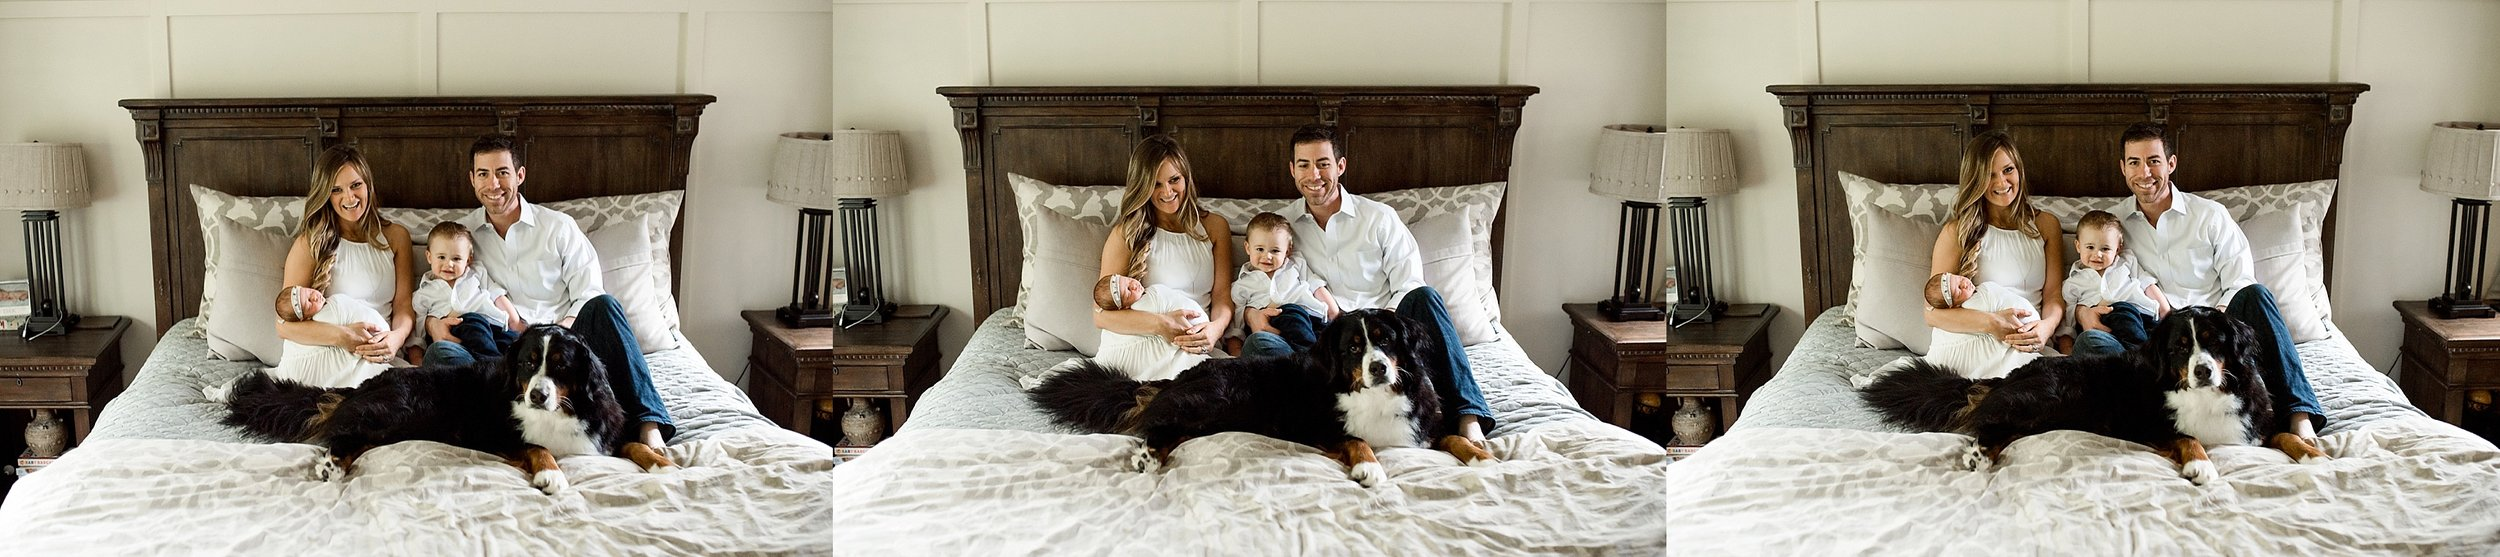 Family lifestyle photos with dog